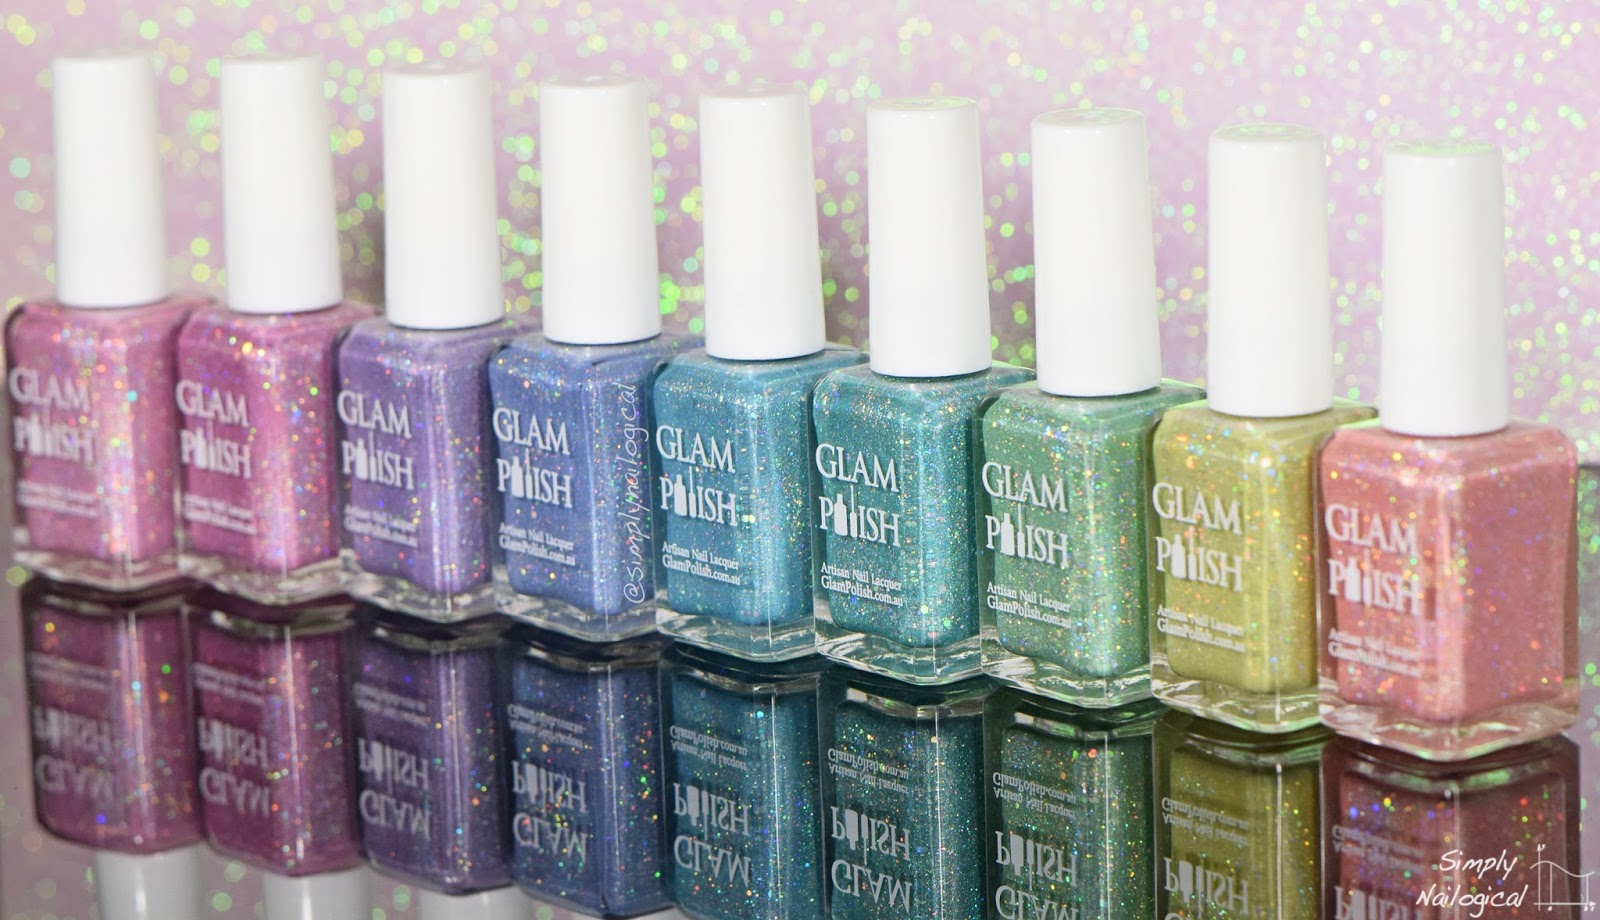 Glam Polish White Witch collection